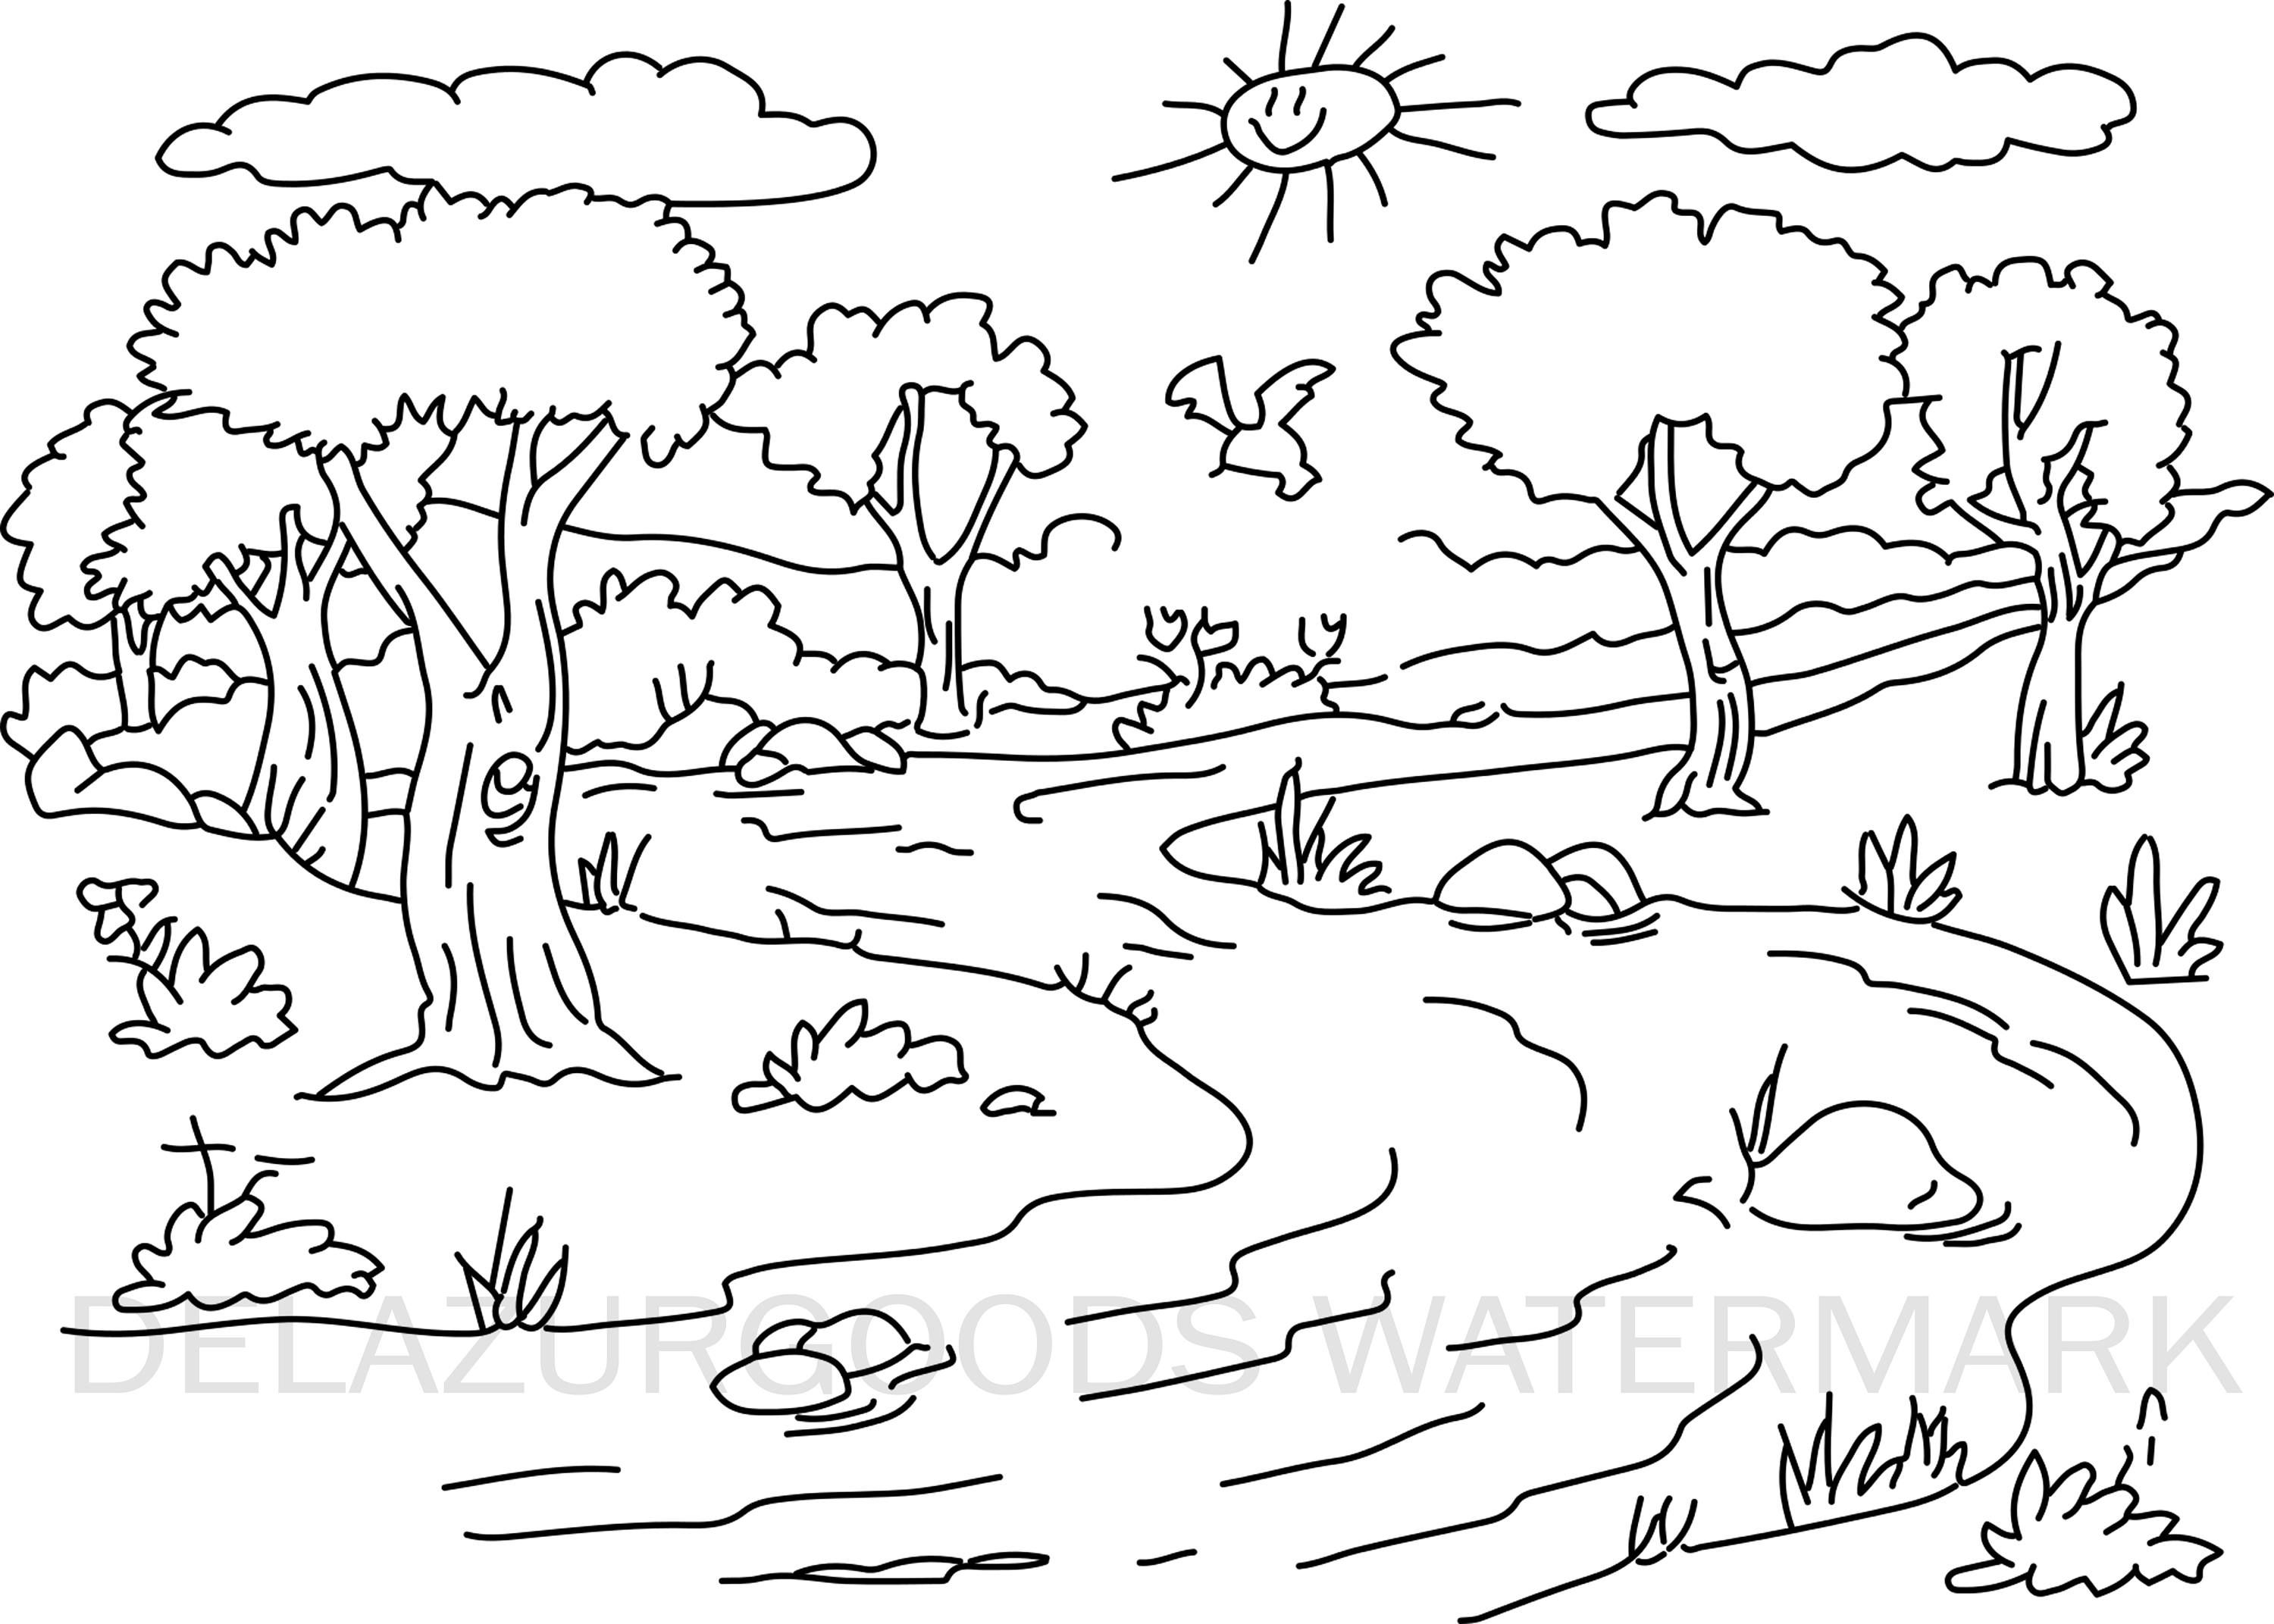 River Of Colours Colouring Wallpaper Peel And Stick Etsy Coloring Pages Nature Free Printable Coloring Pages Coloring Pages